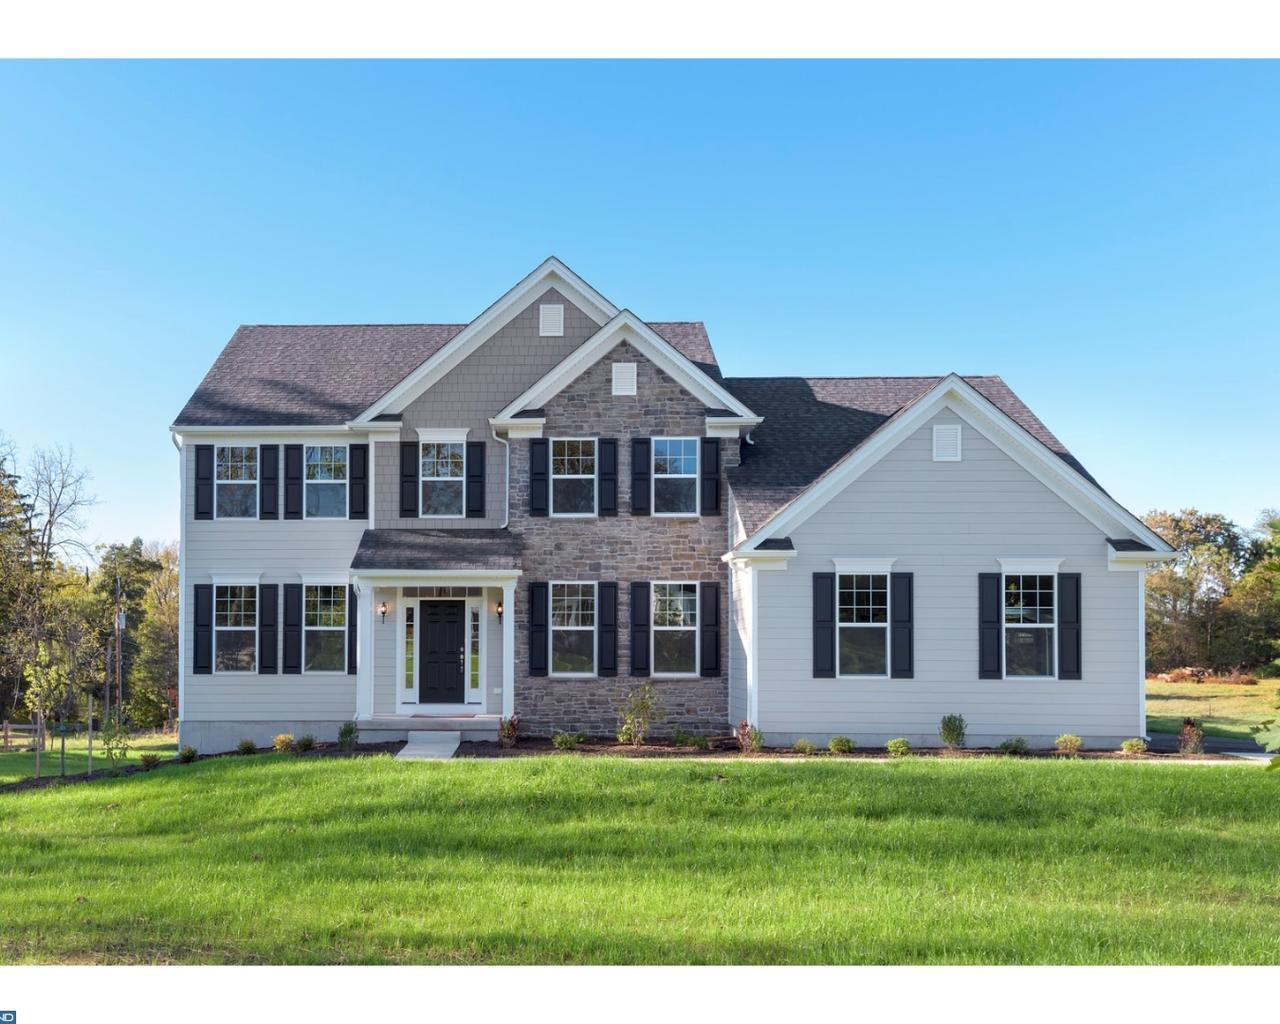 Nc04 lucia ln collegeville pa 19426 mls 6981954 redfin for 7 kitchen lane harding pa